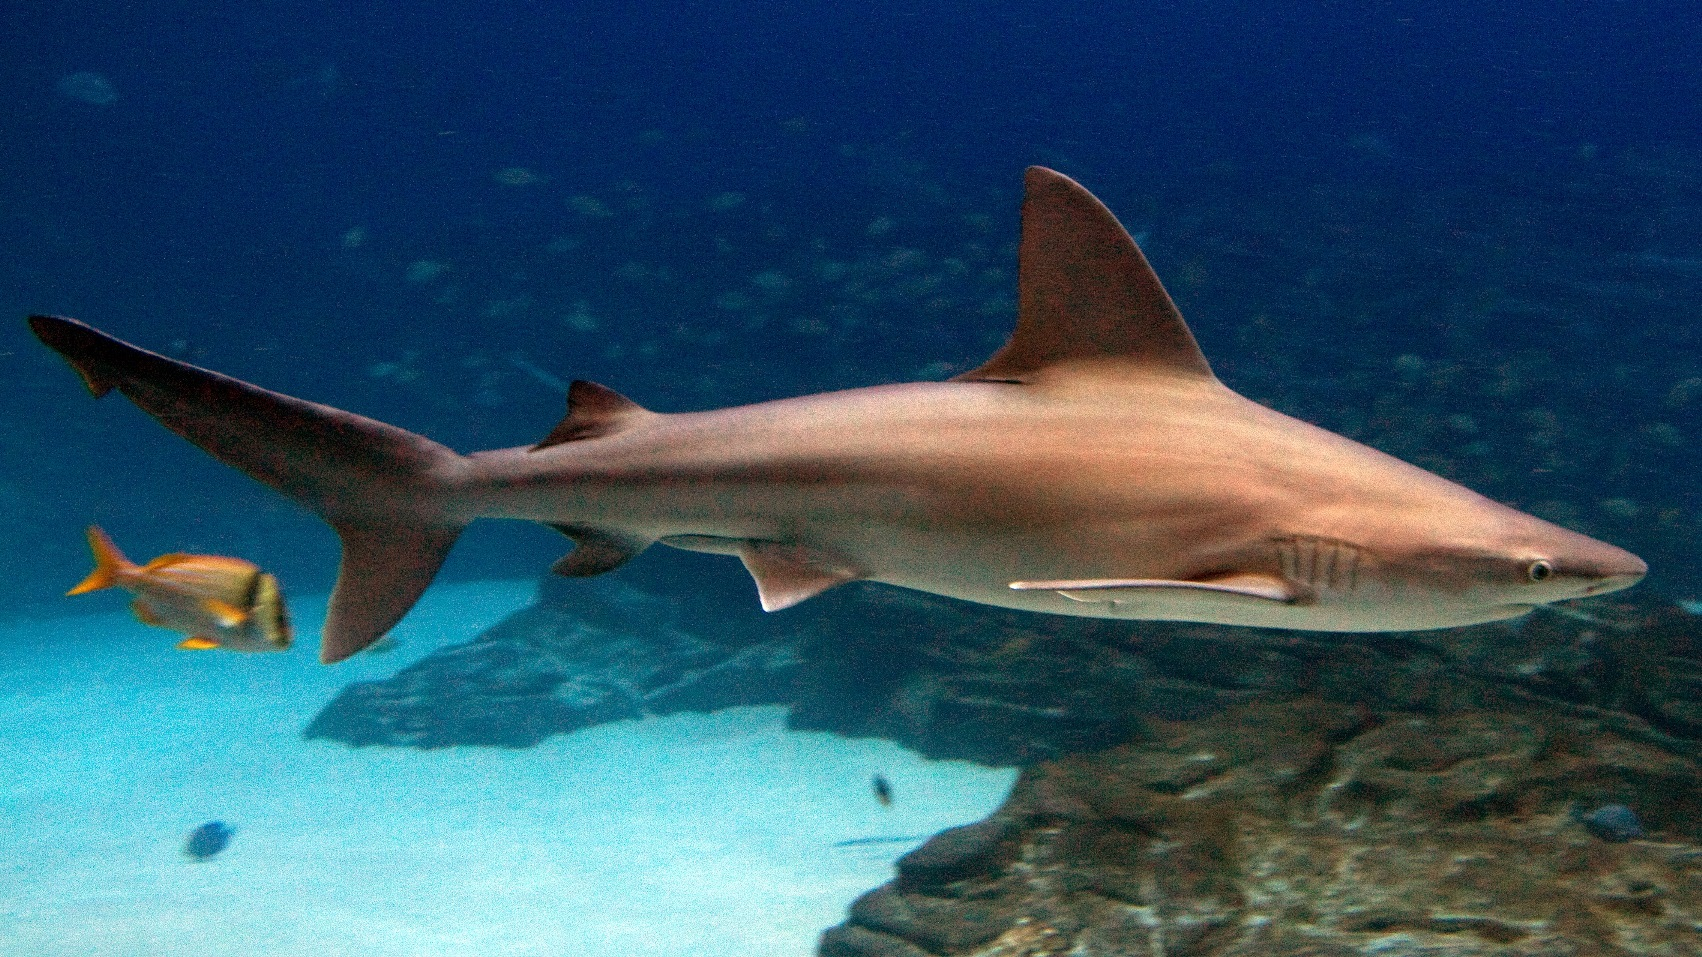 A sandbar shark (Carcharhinus plumbeus) swimming. These sharks inhabit coastal areas but dine on fish, crabs, and rays and are considered not dangerous to people. However, commercial fisheries targeted these sharks for their relatively large dorsal fins, and the species is now listed as vulnerable.